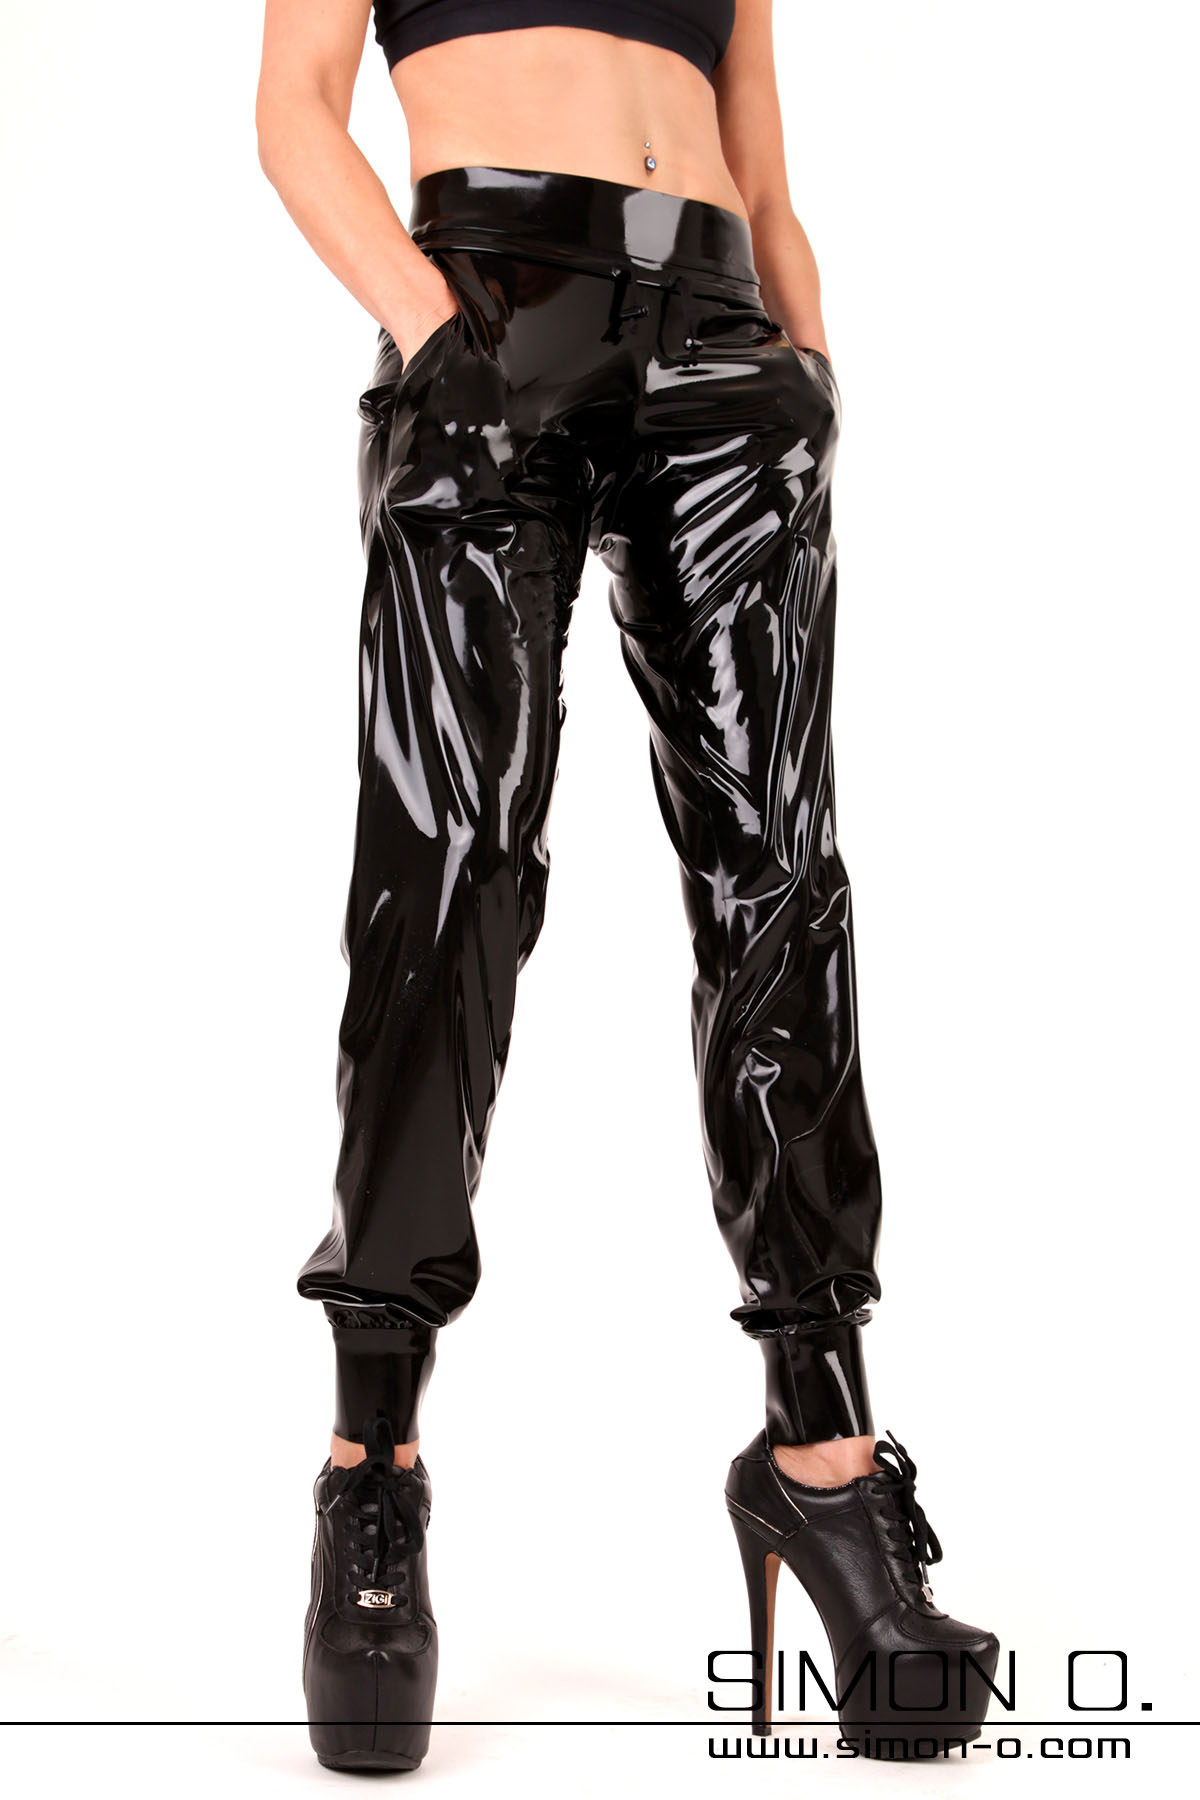 Comfortable hot looking latex sweat pants with pockets Latex sweatpants with a special pricing, express delivery and a Simon O 14 day exchange guarantee. The …